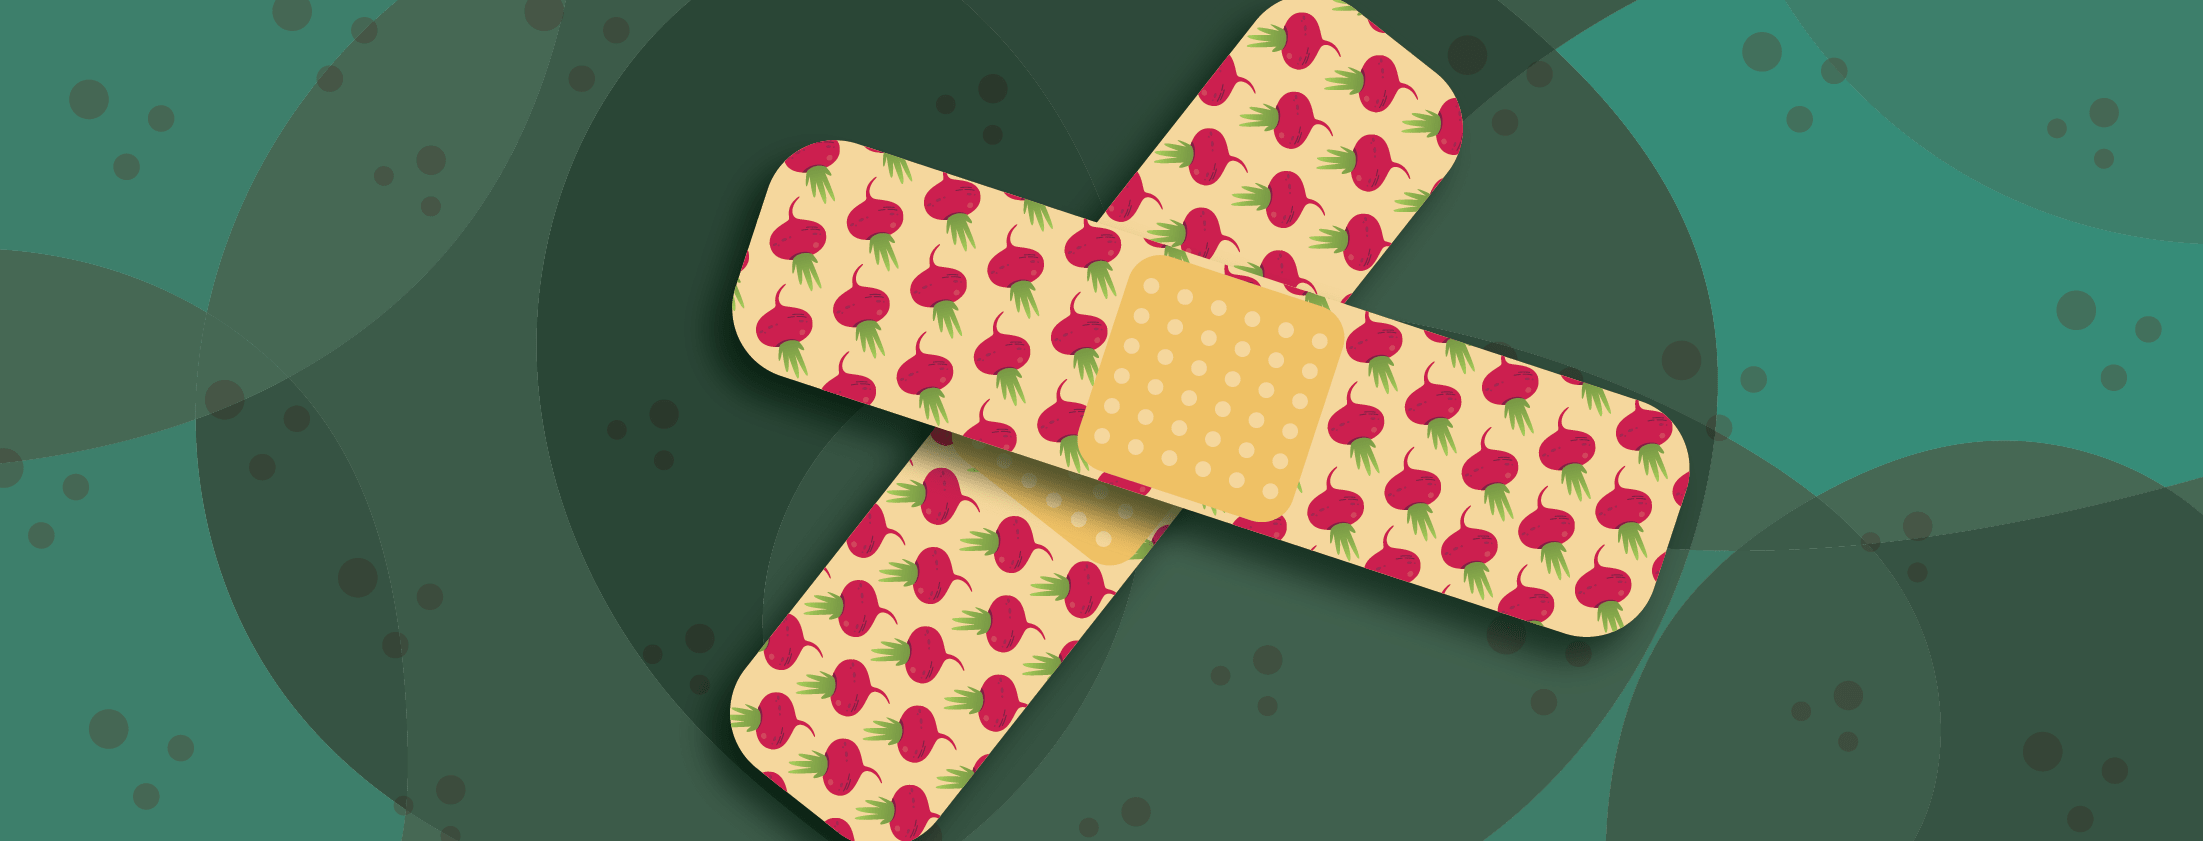 Bandaids with a beet pattern